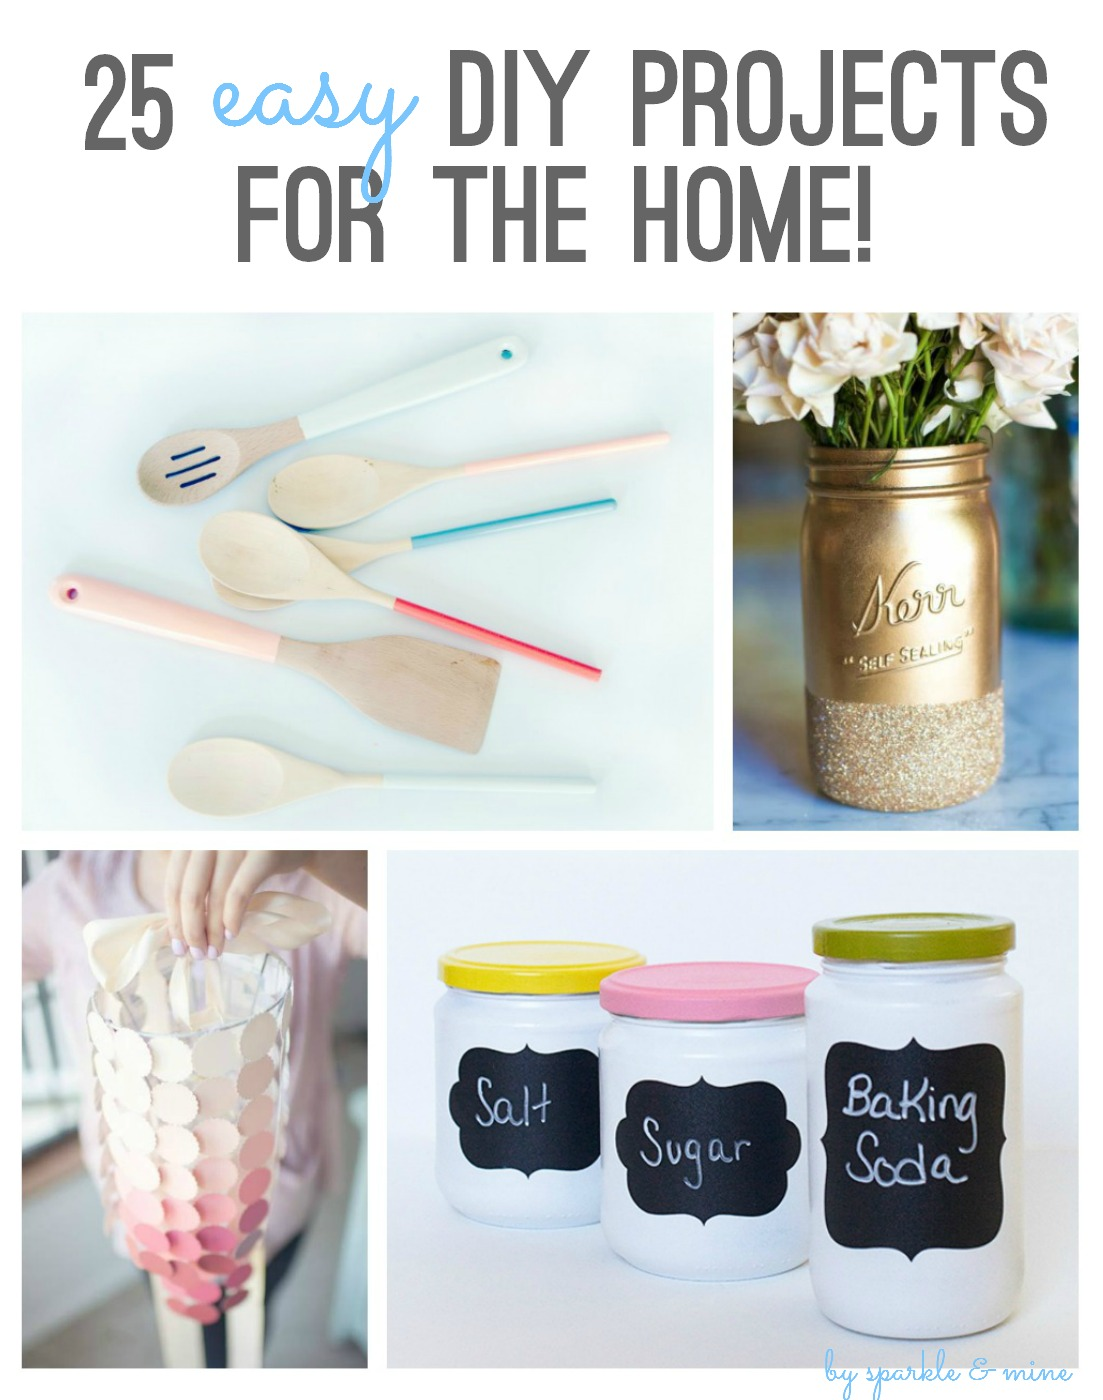 Sparkle & Mine: 25 Easy DIY Projects For The Home